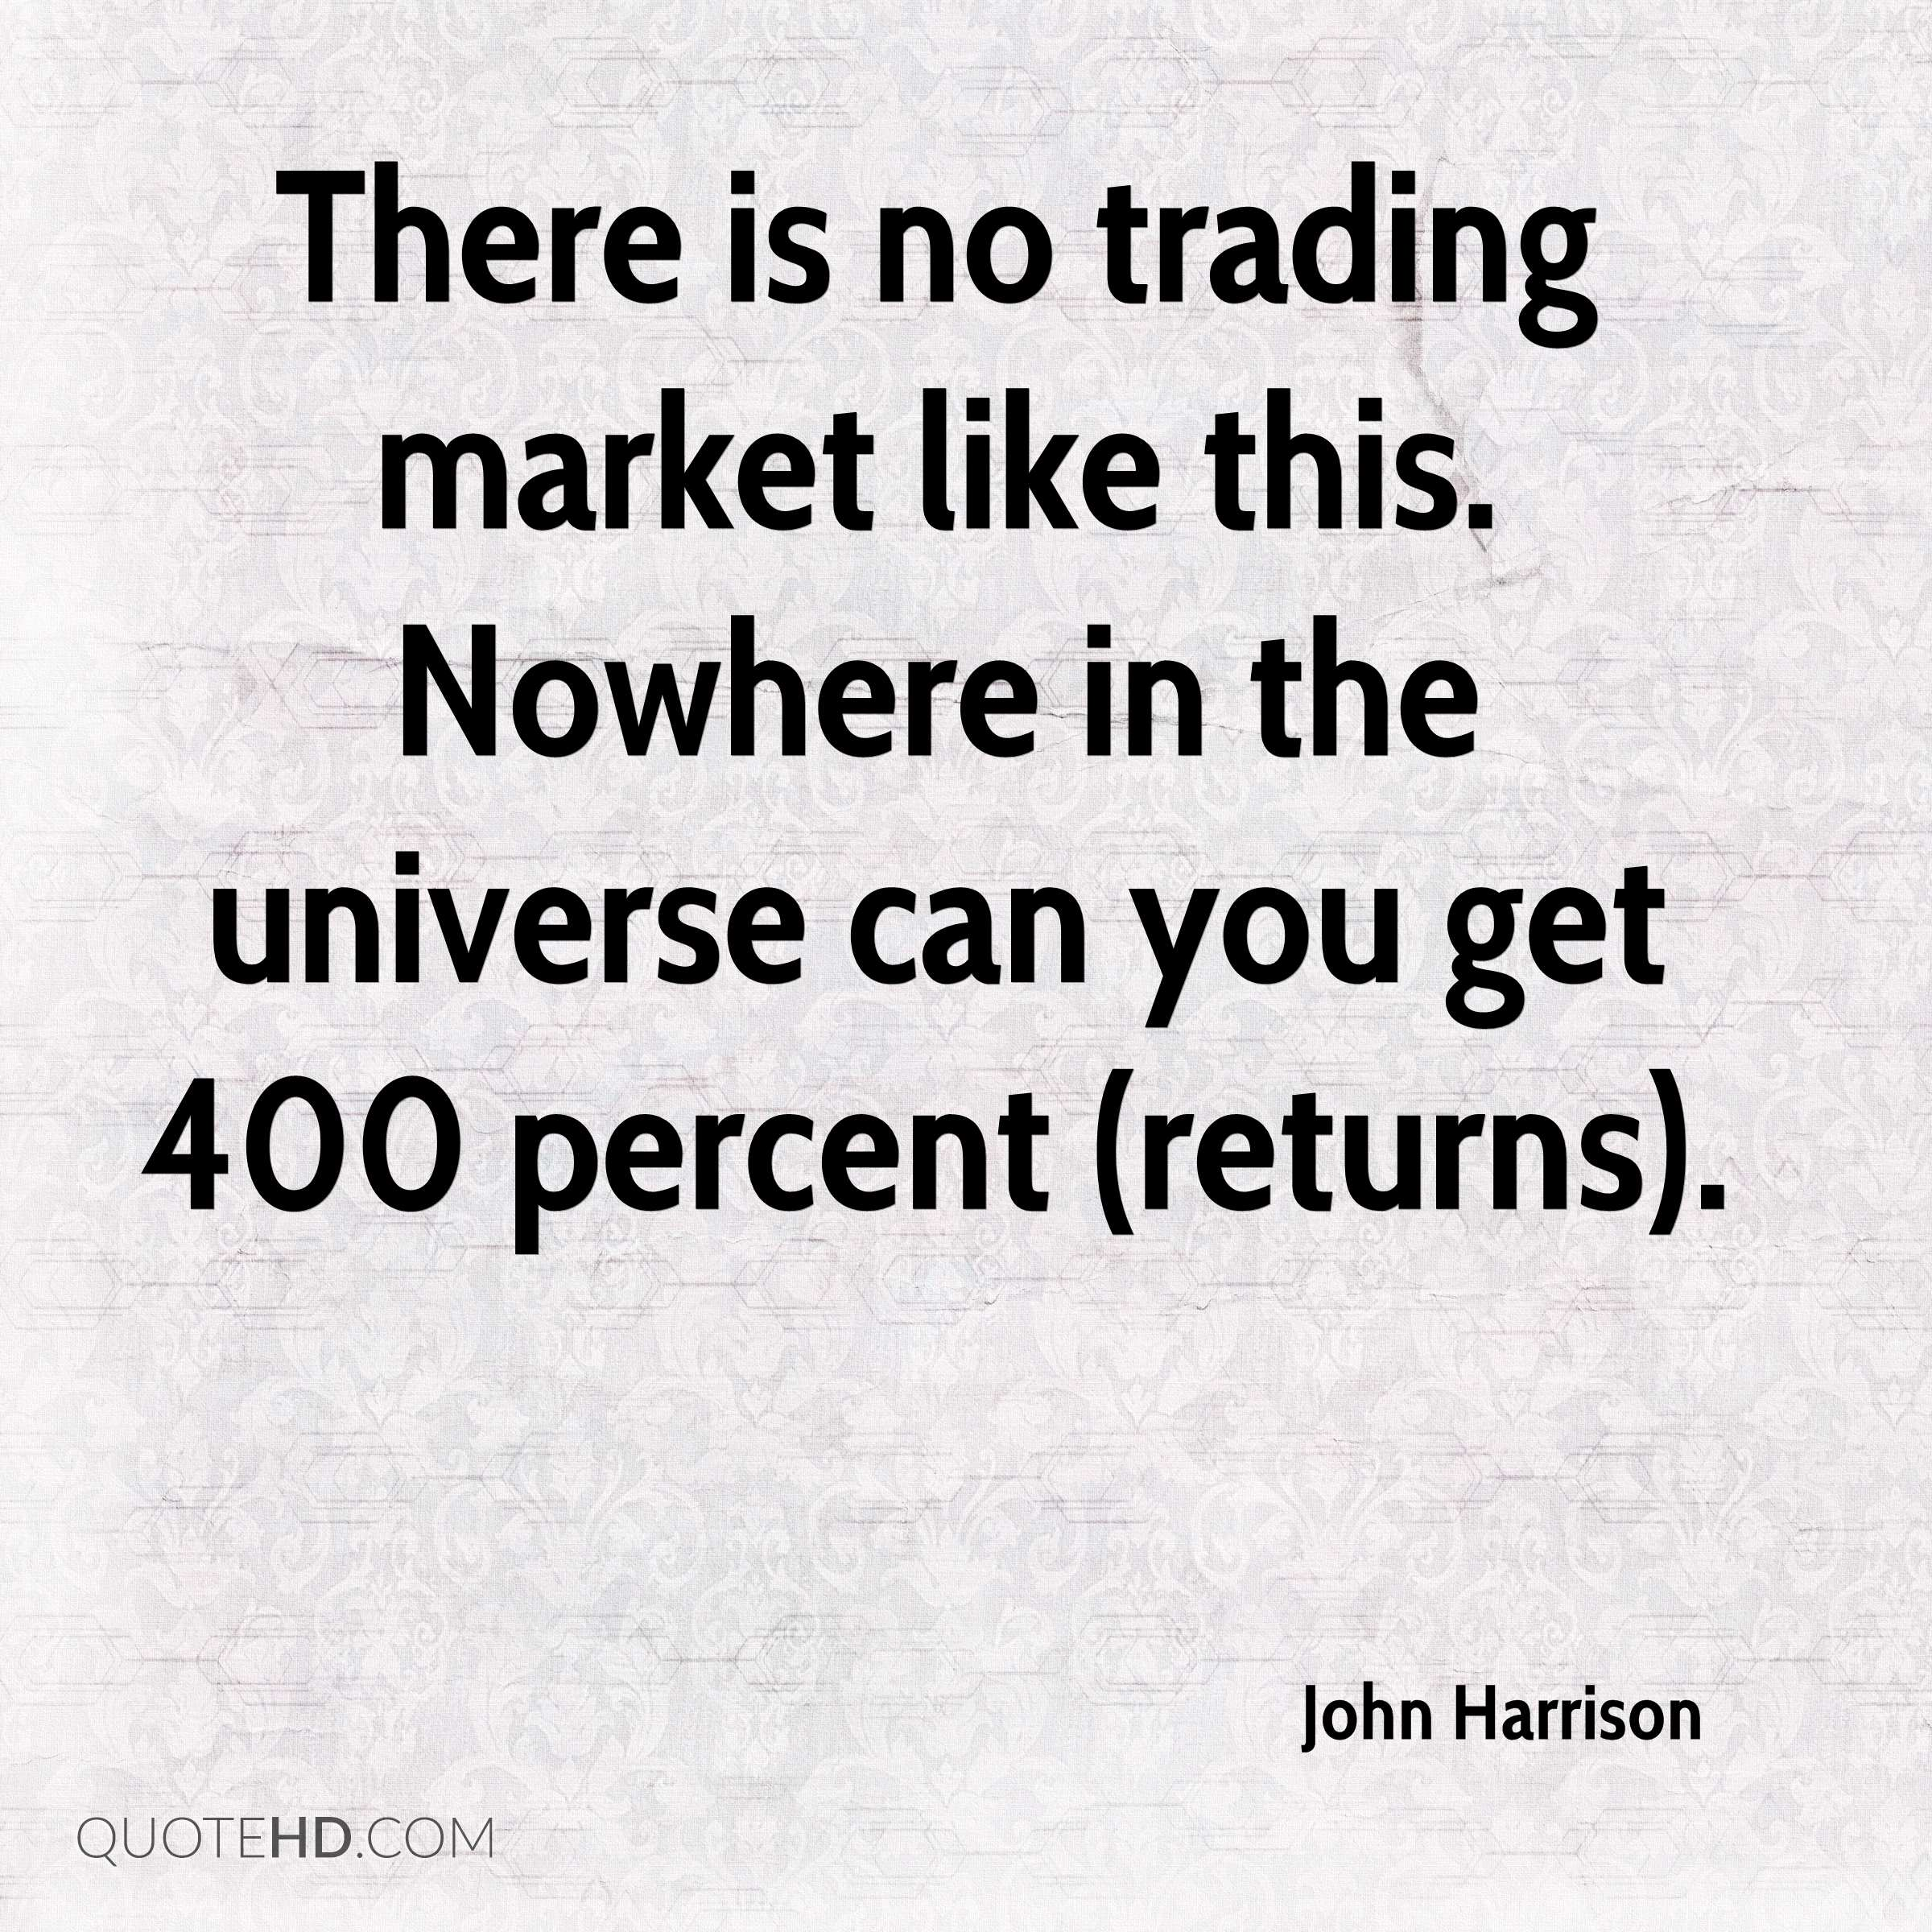 There is no trading market like this. Nowhere in the universe can you get 400 percent (returns).